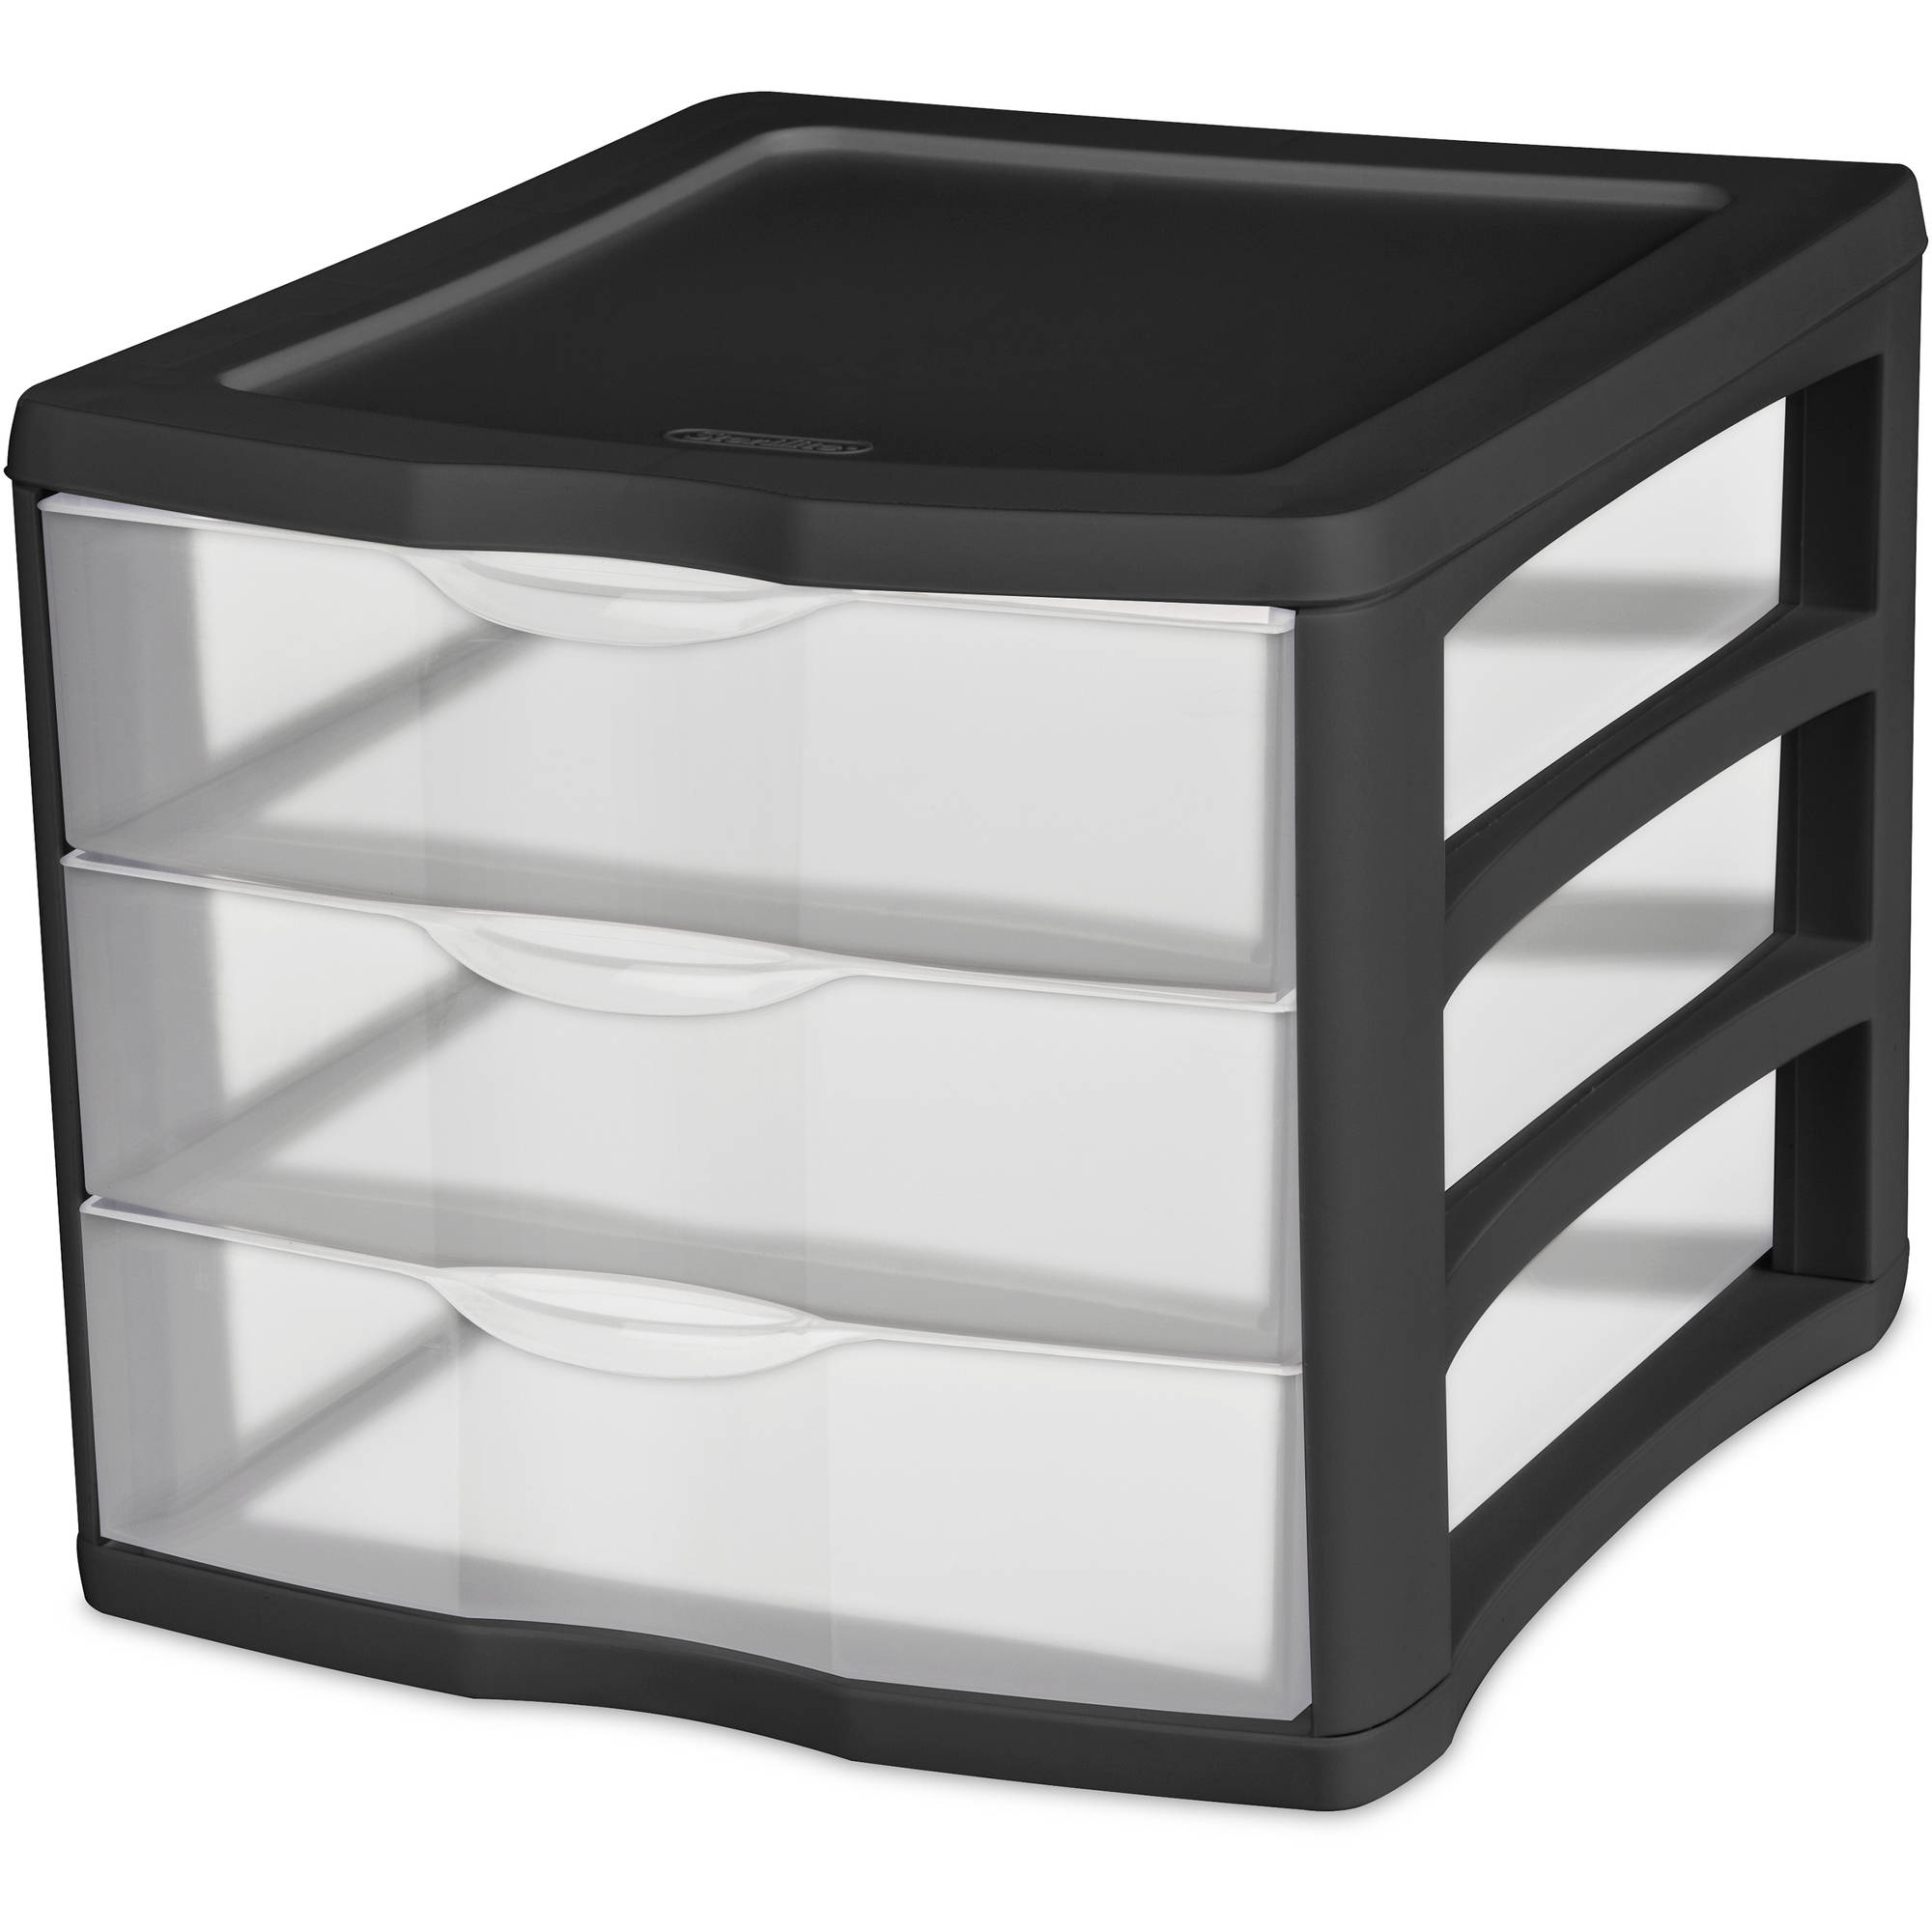 four drawers plastic clear way by organizer rubbermaid with optimizers x thumbnail